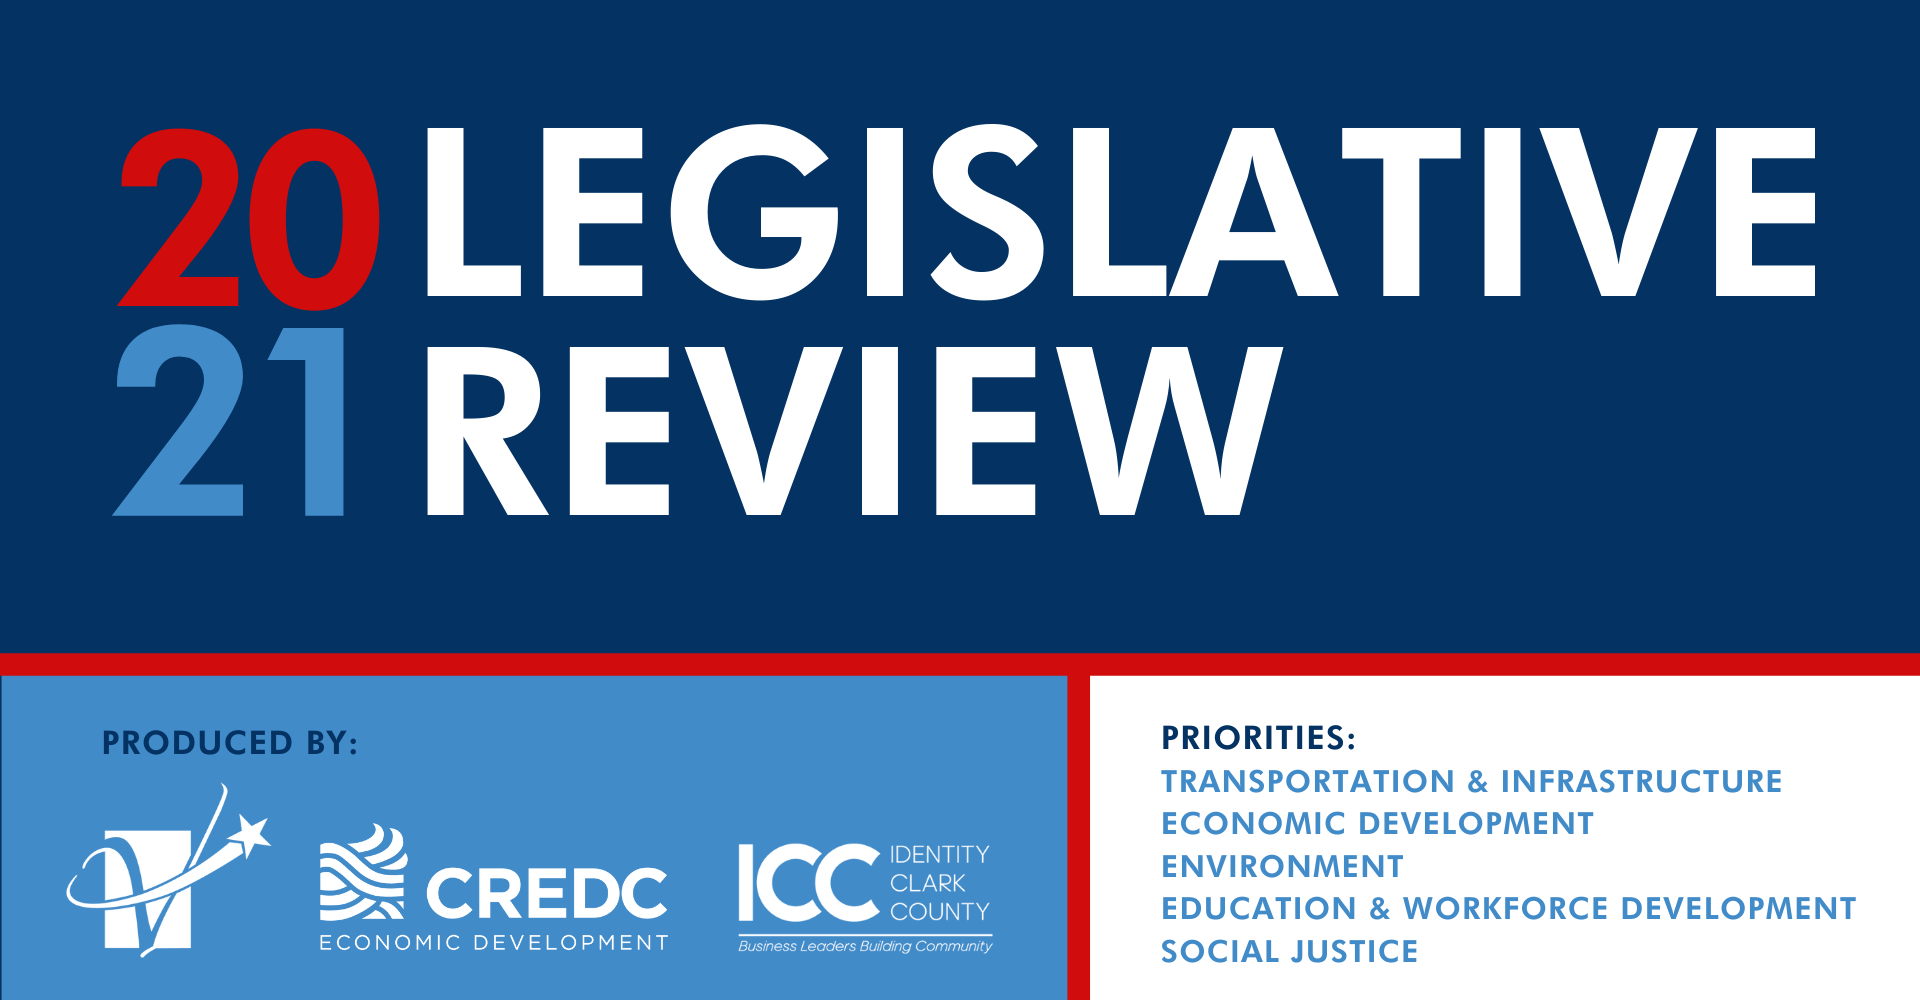 2021 legislative review produced by the greater vancouver chamber columbia river economic development council identity clark county priorities transportation infrastructure economic development environment education workforce development social justice